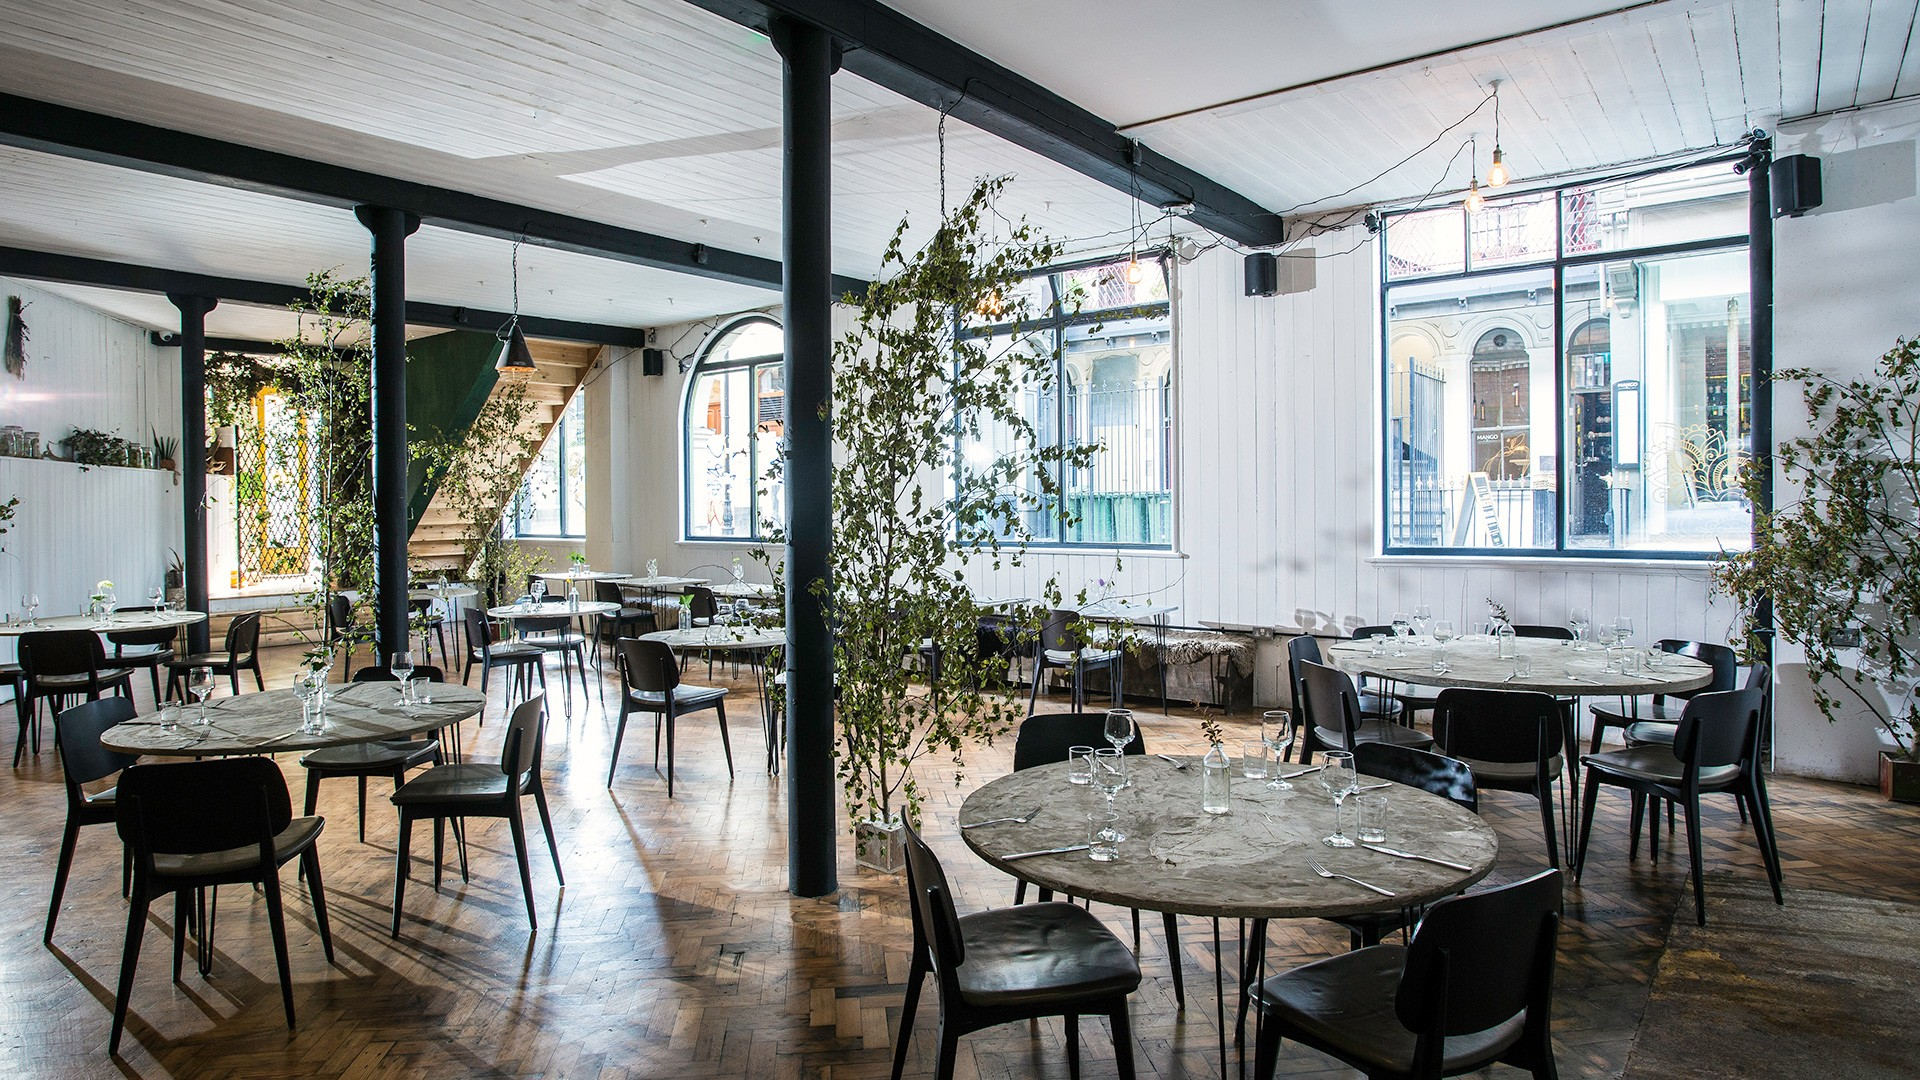 Sustainable restaurants London: Native